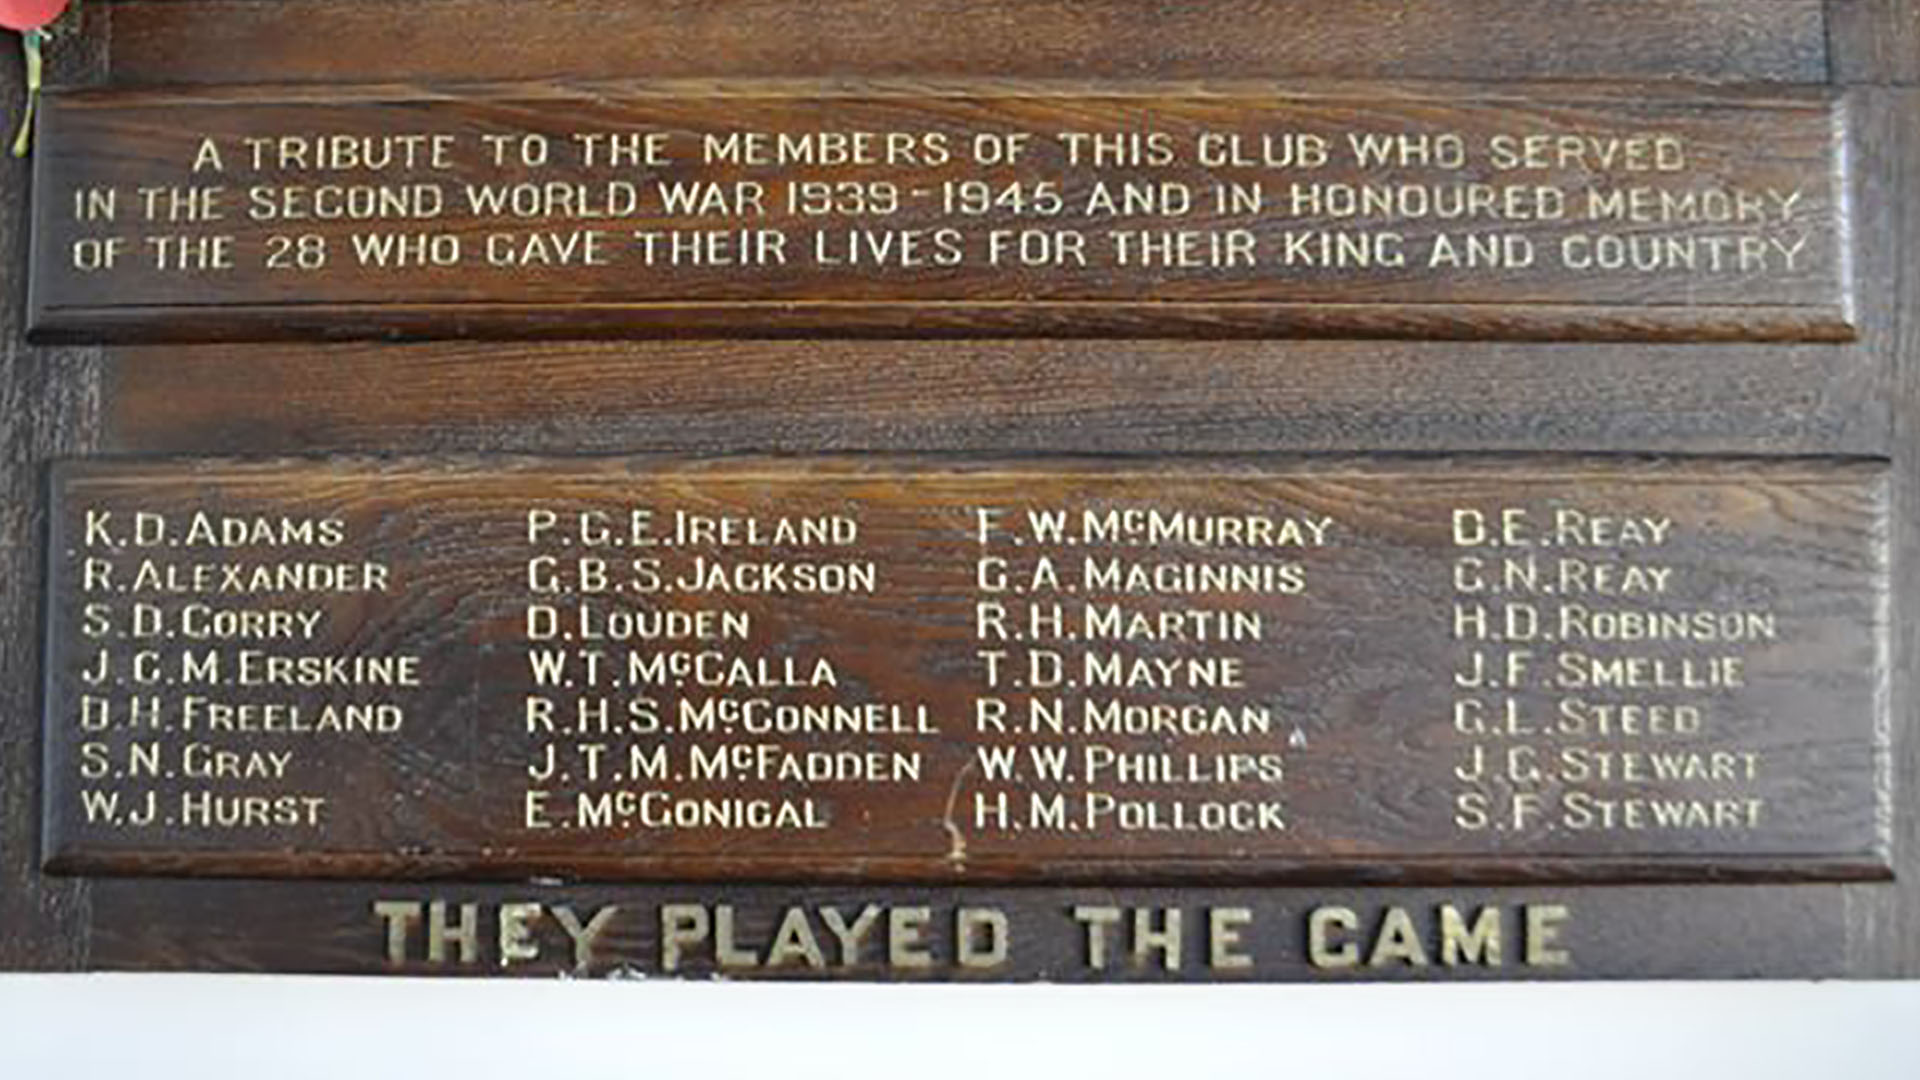 North of Ireland Football and Cricket Club in World War Two